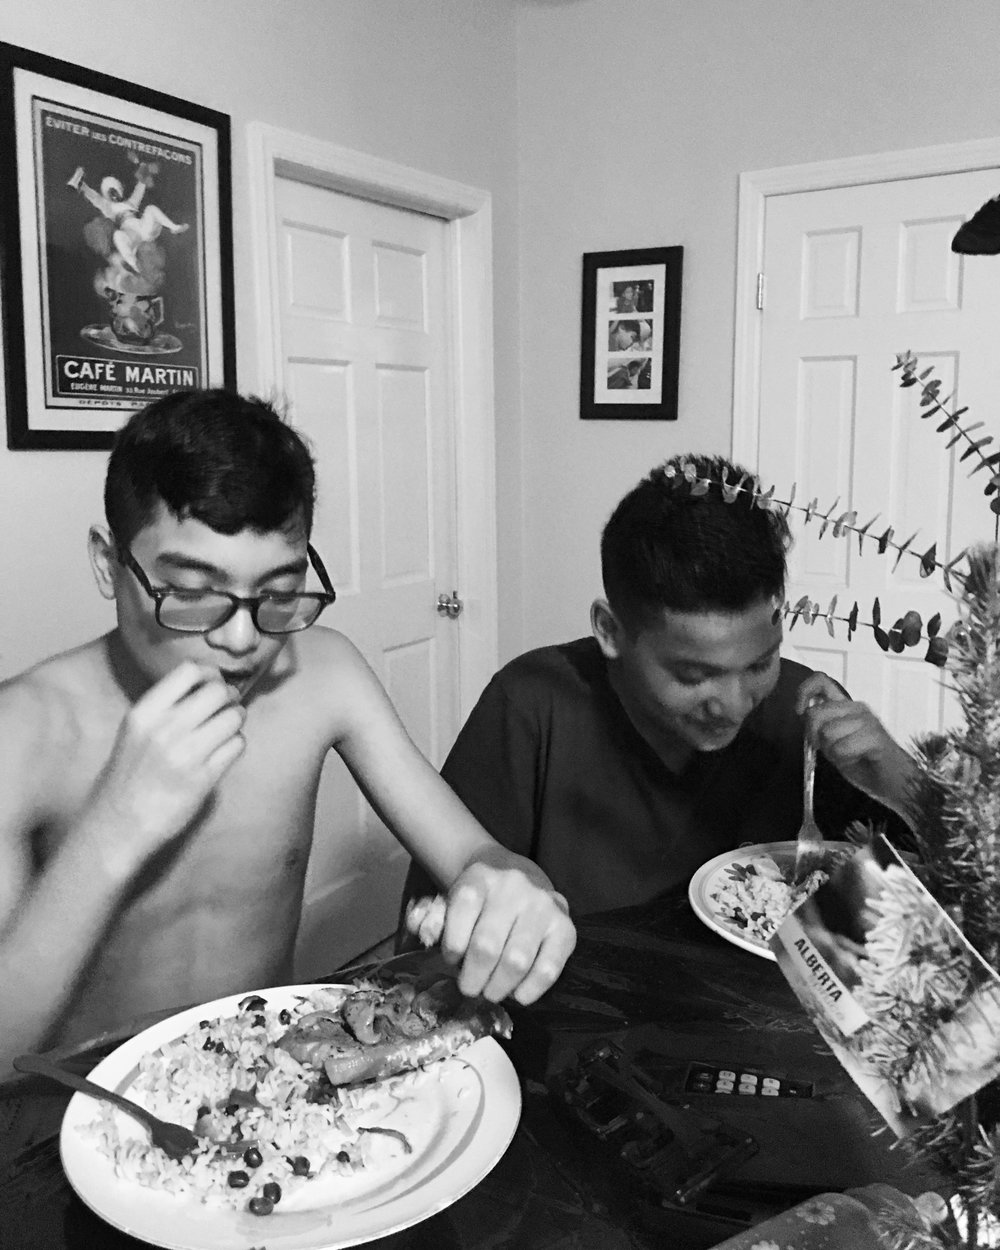 Roman and Saul Vazquez enjoying New Years Eve Dinner.